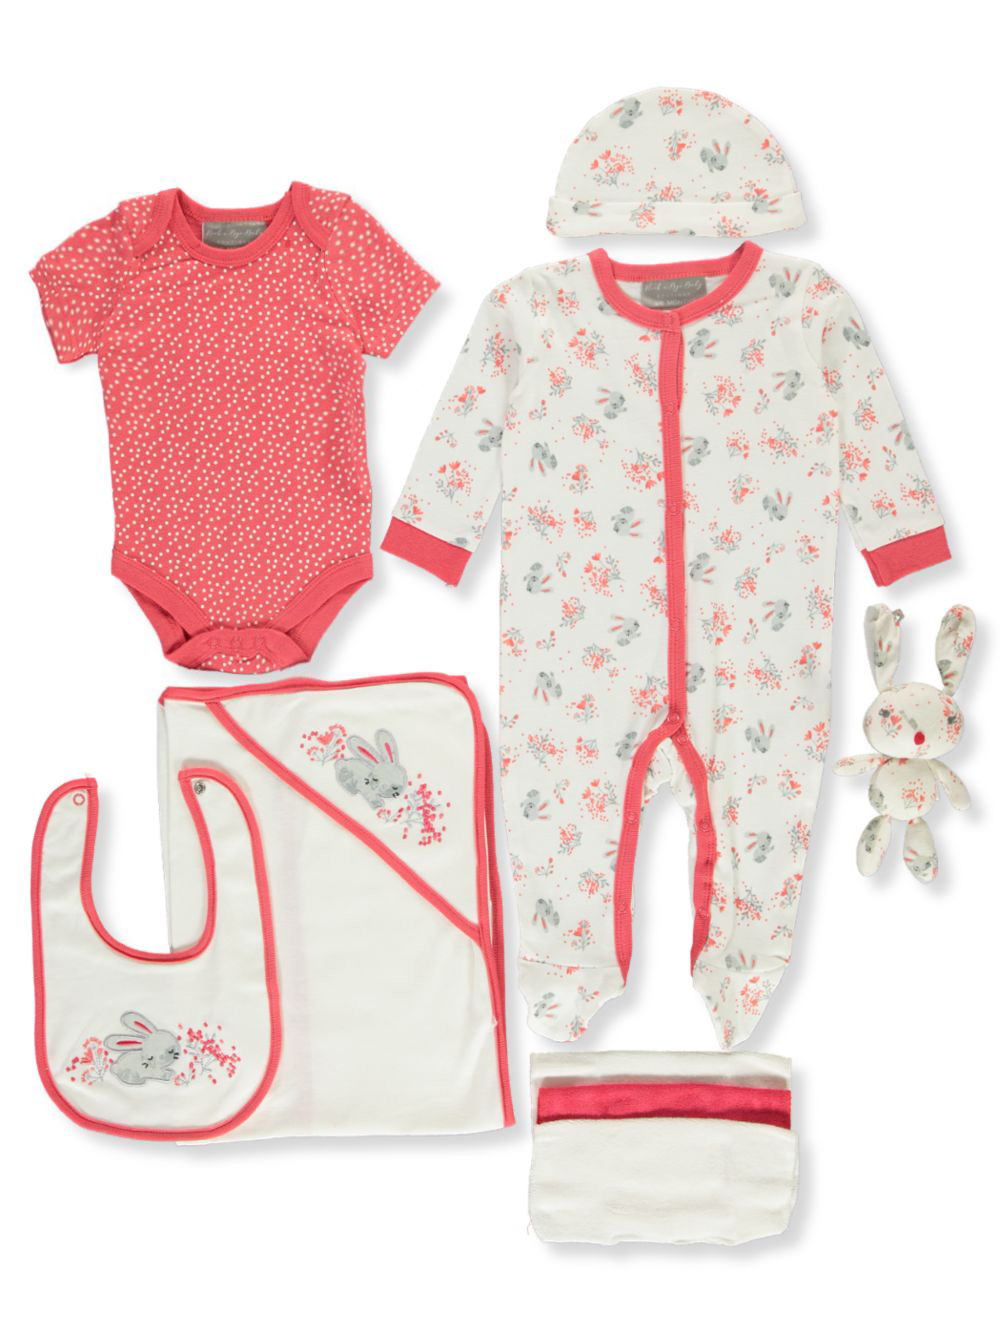 Gift Sets 10-Piece Layette Set